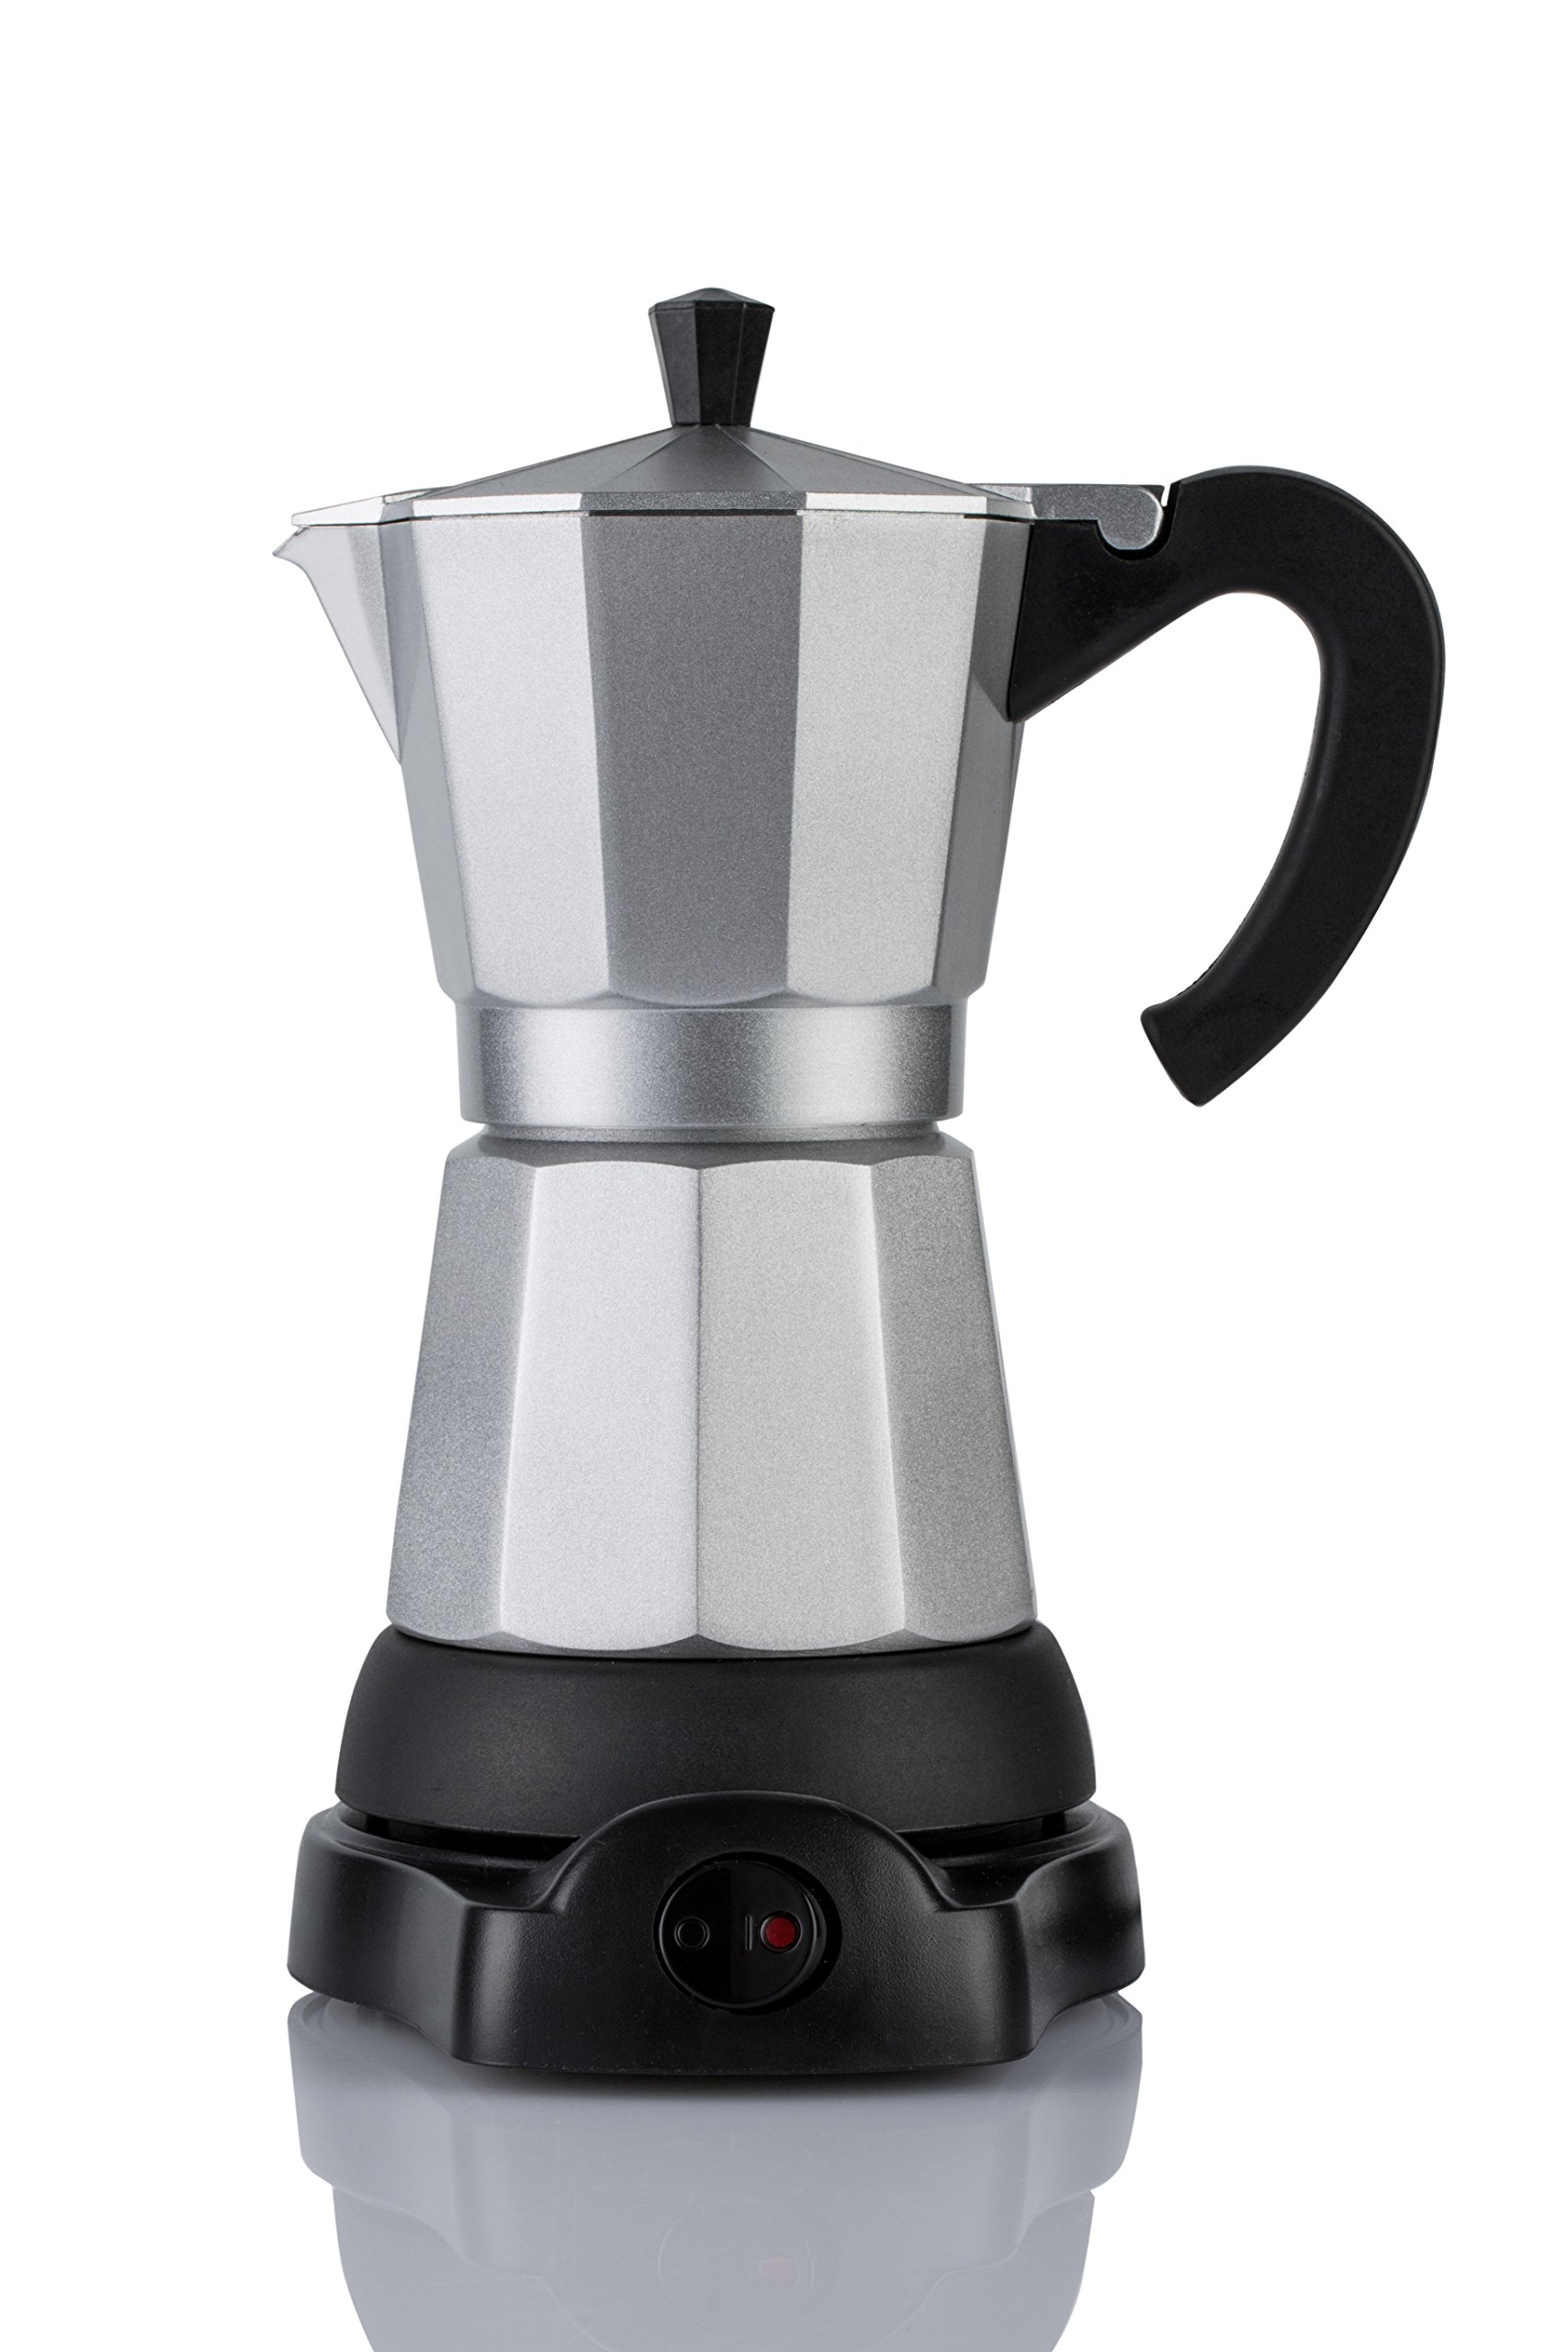 Mandarin-Gear - 6 cup - Electric Espresso coffee/moka stovetop maker 110V US ONLY!